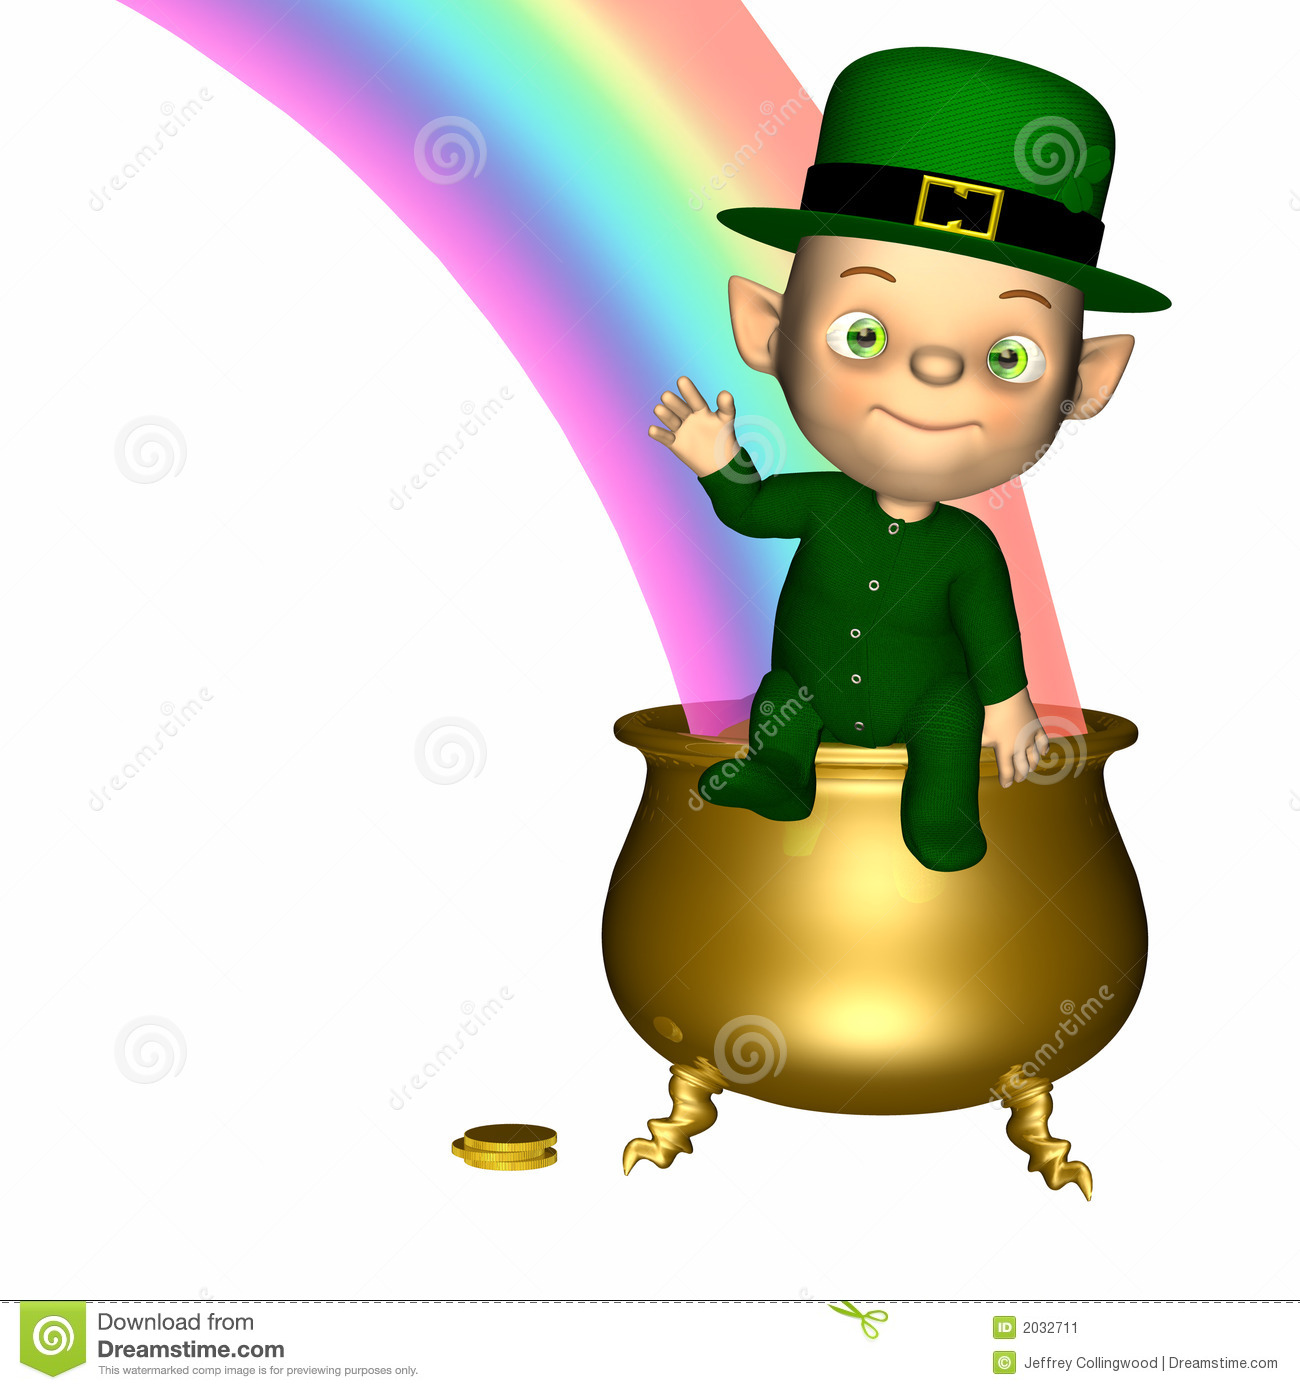 leprechaun stock photos royalty free stock images